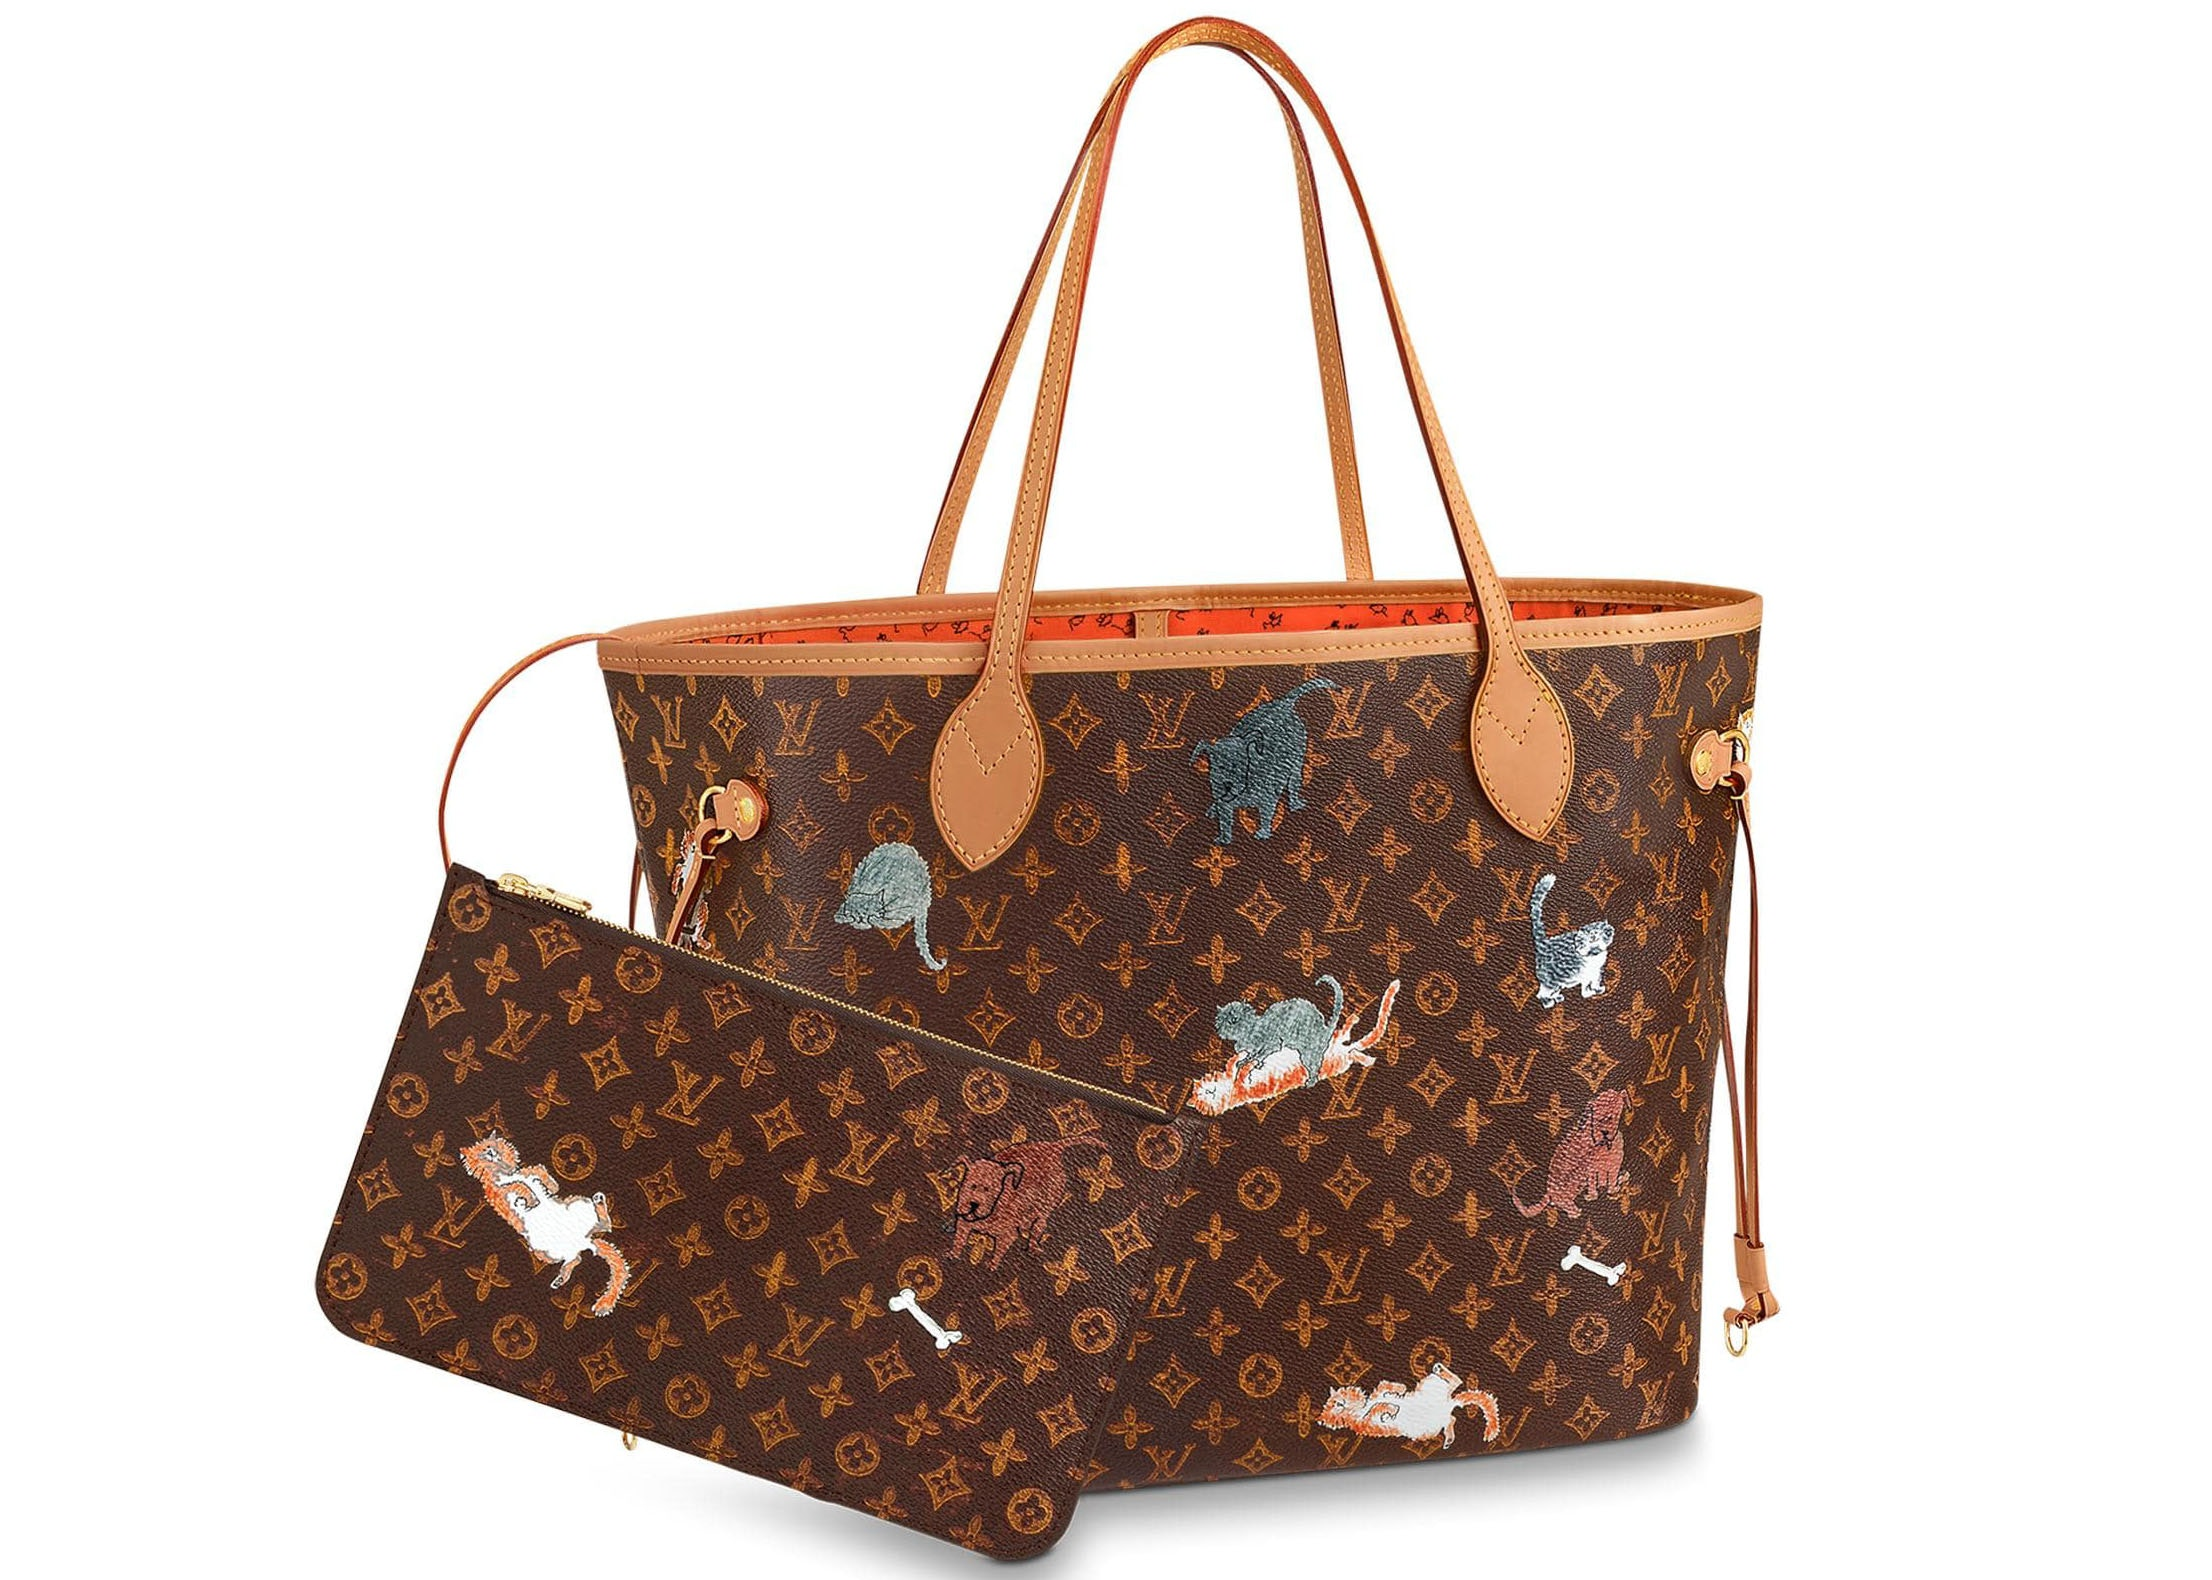 Louis Vuitton Neverfull Monogram Catogram (With Pouch) MM Brown/Orange